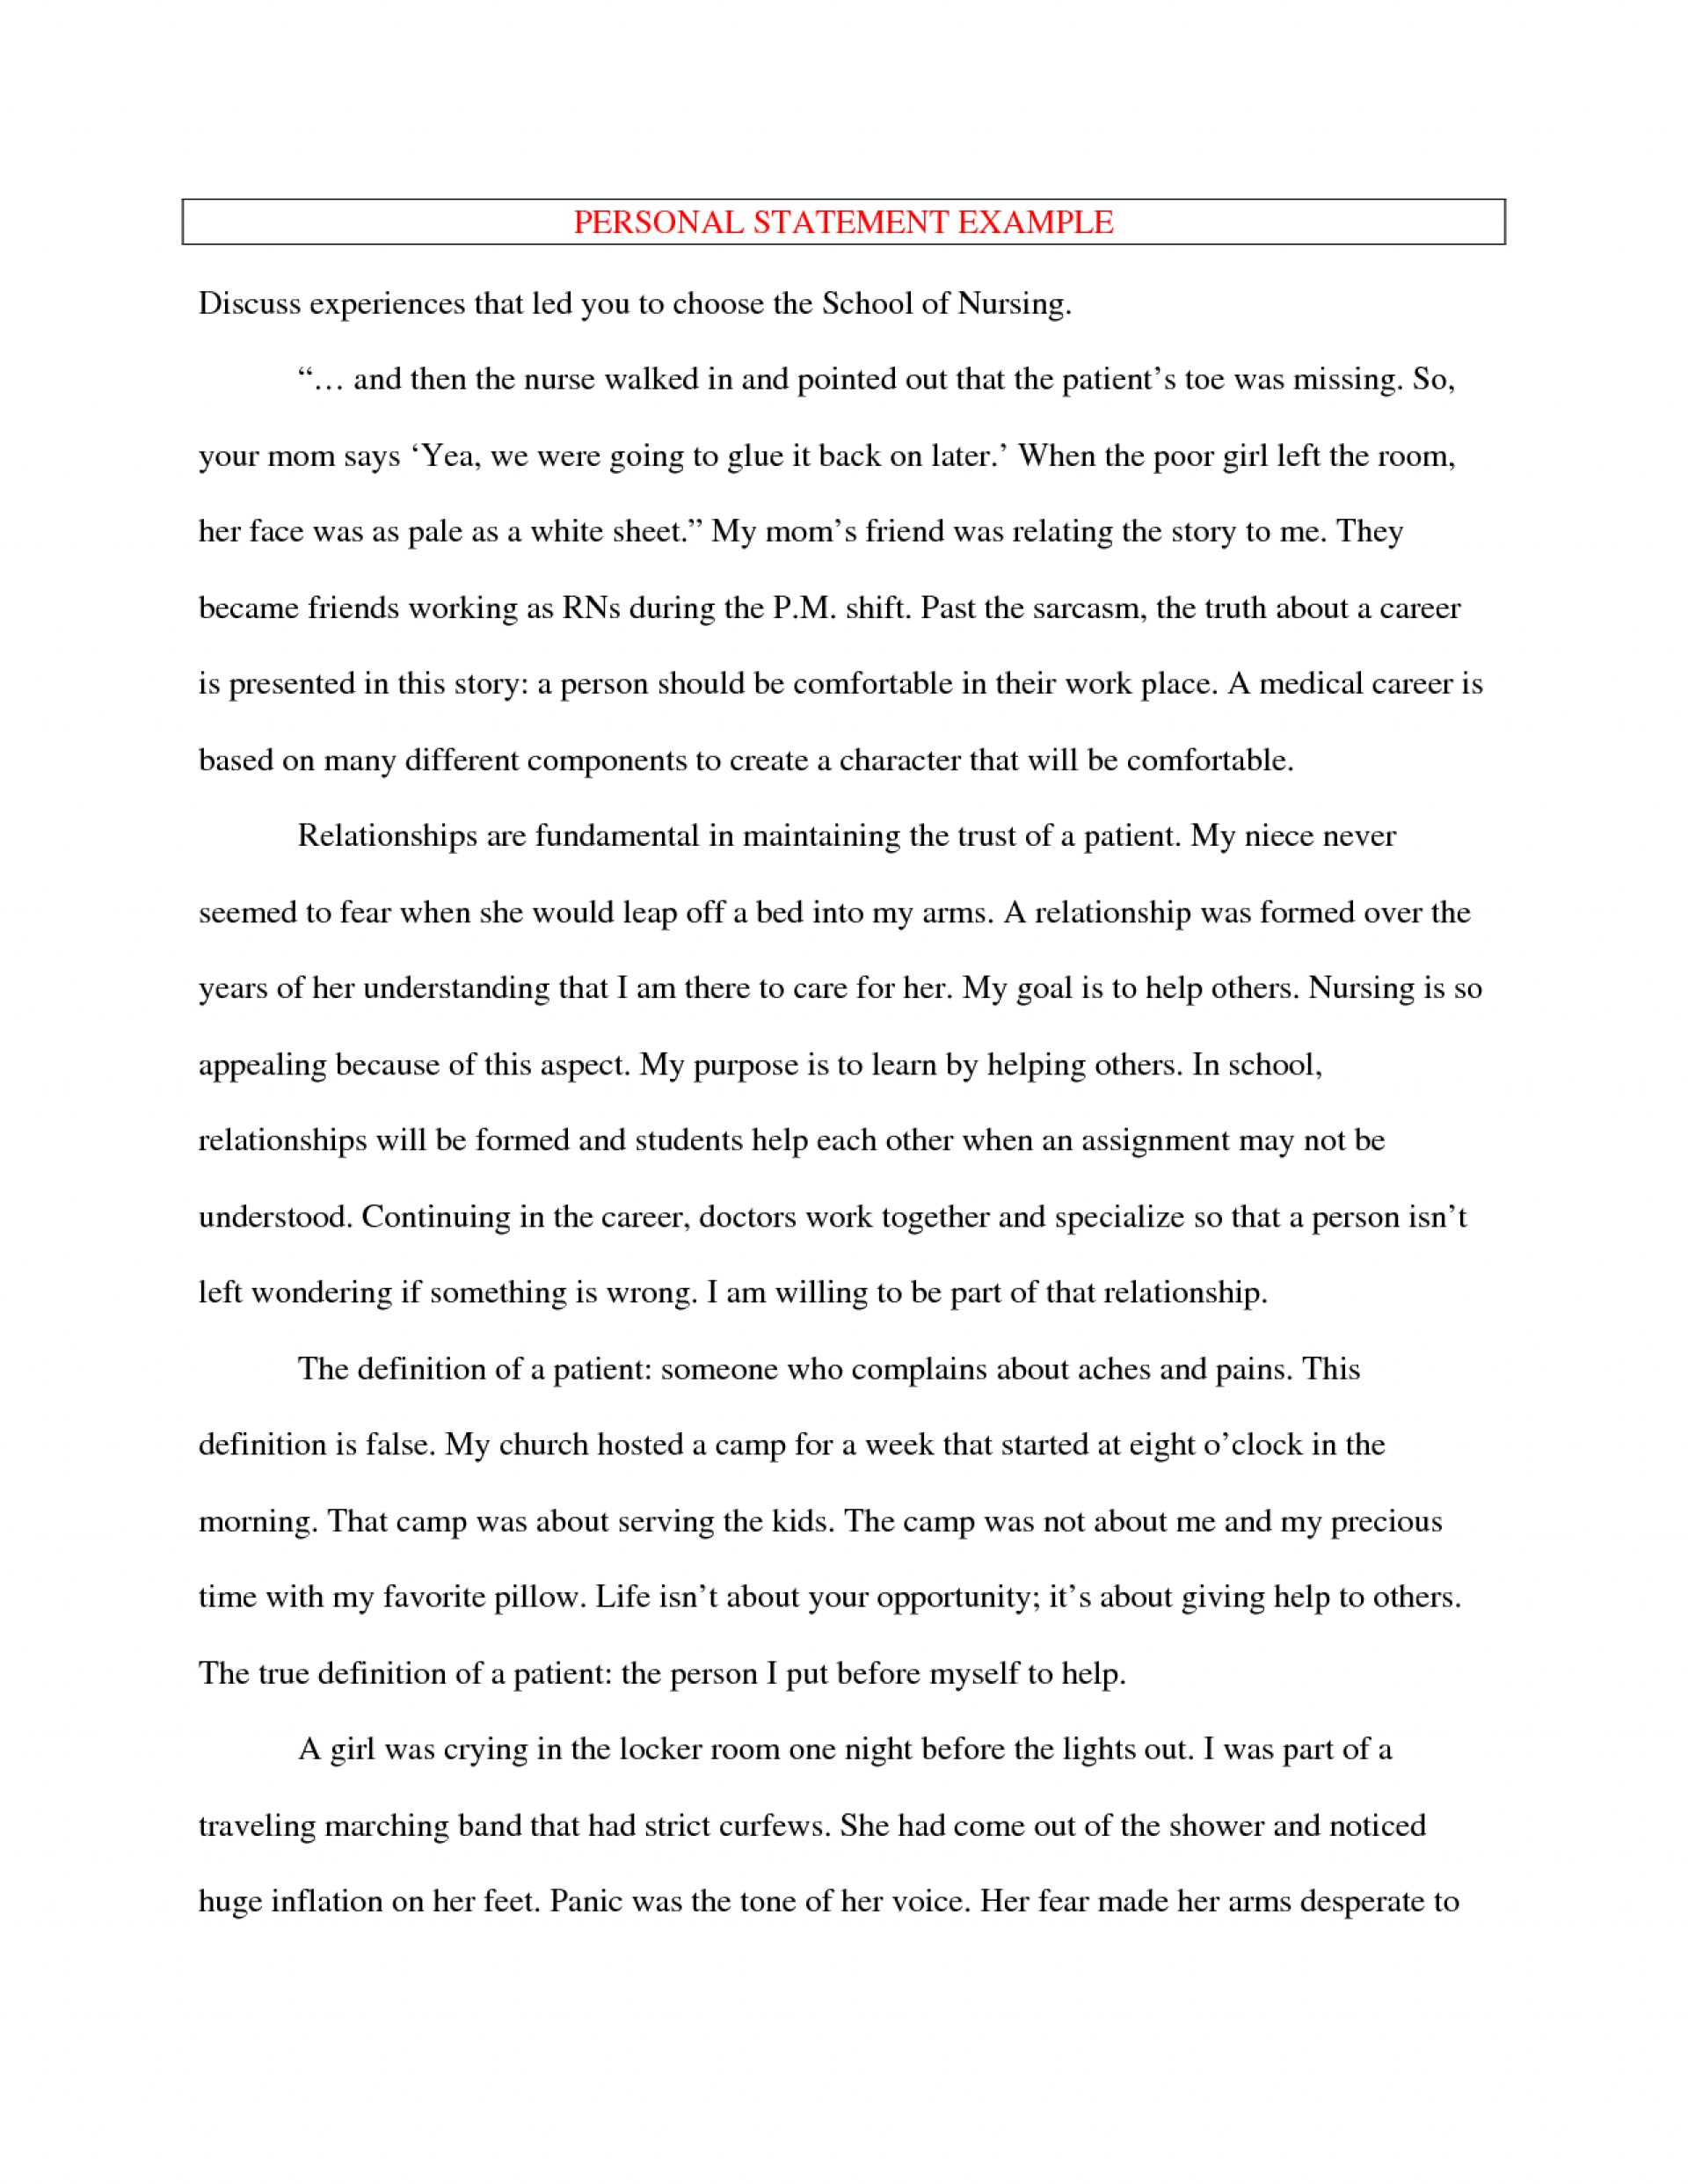 003 Essay Example Personal Submissions Law School Statement Format Template Best 2017 Submit To Buzzfeed Salon 1920